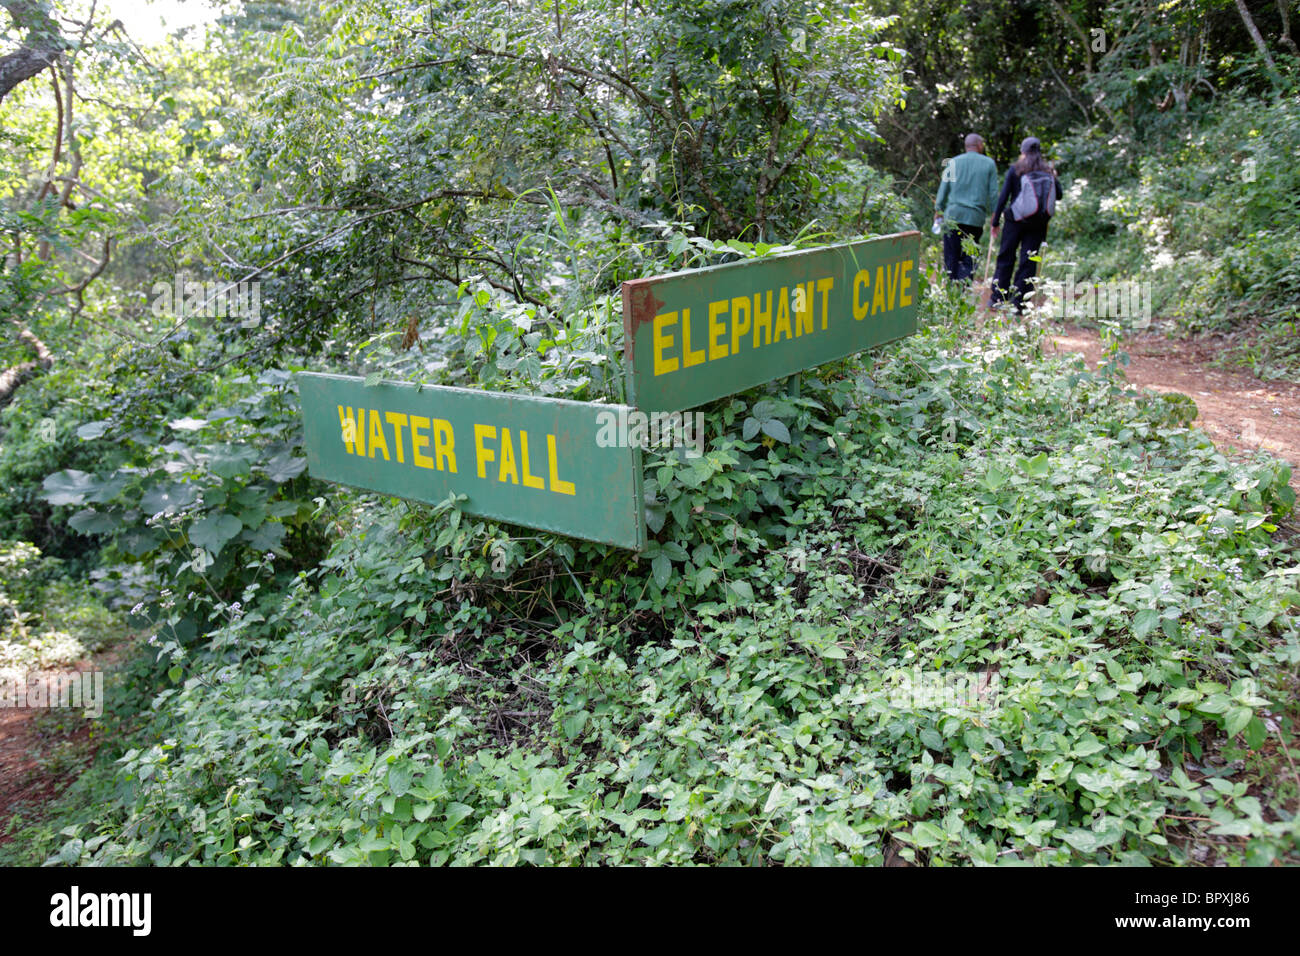 Roadsigns in the forest for Water Fall or Elephant Cave, Ngorongoro Conservation Area, Tanzania - Stock Image